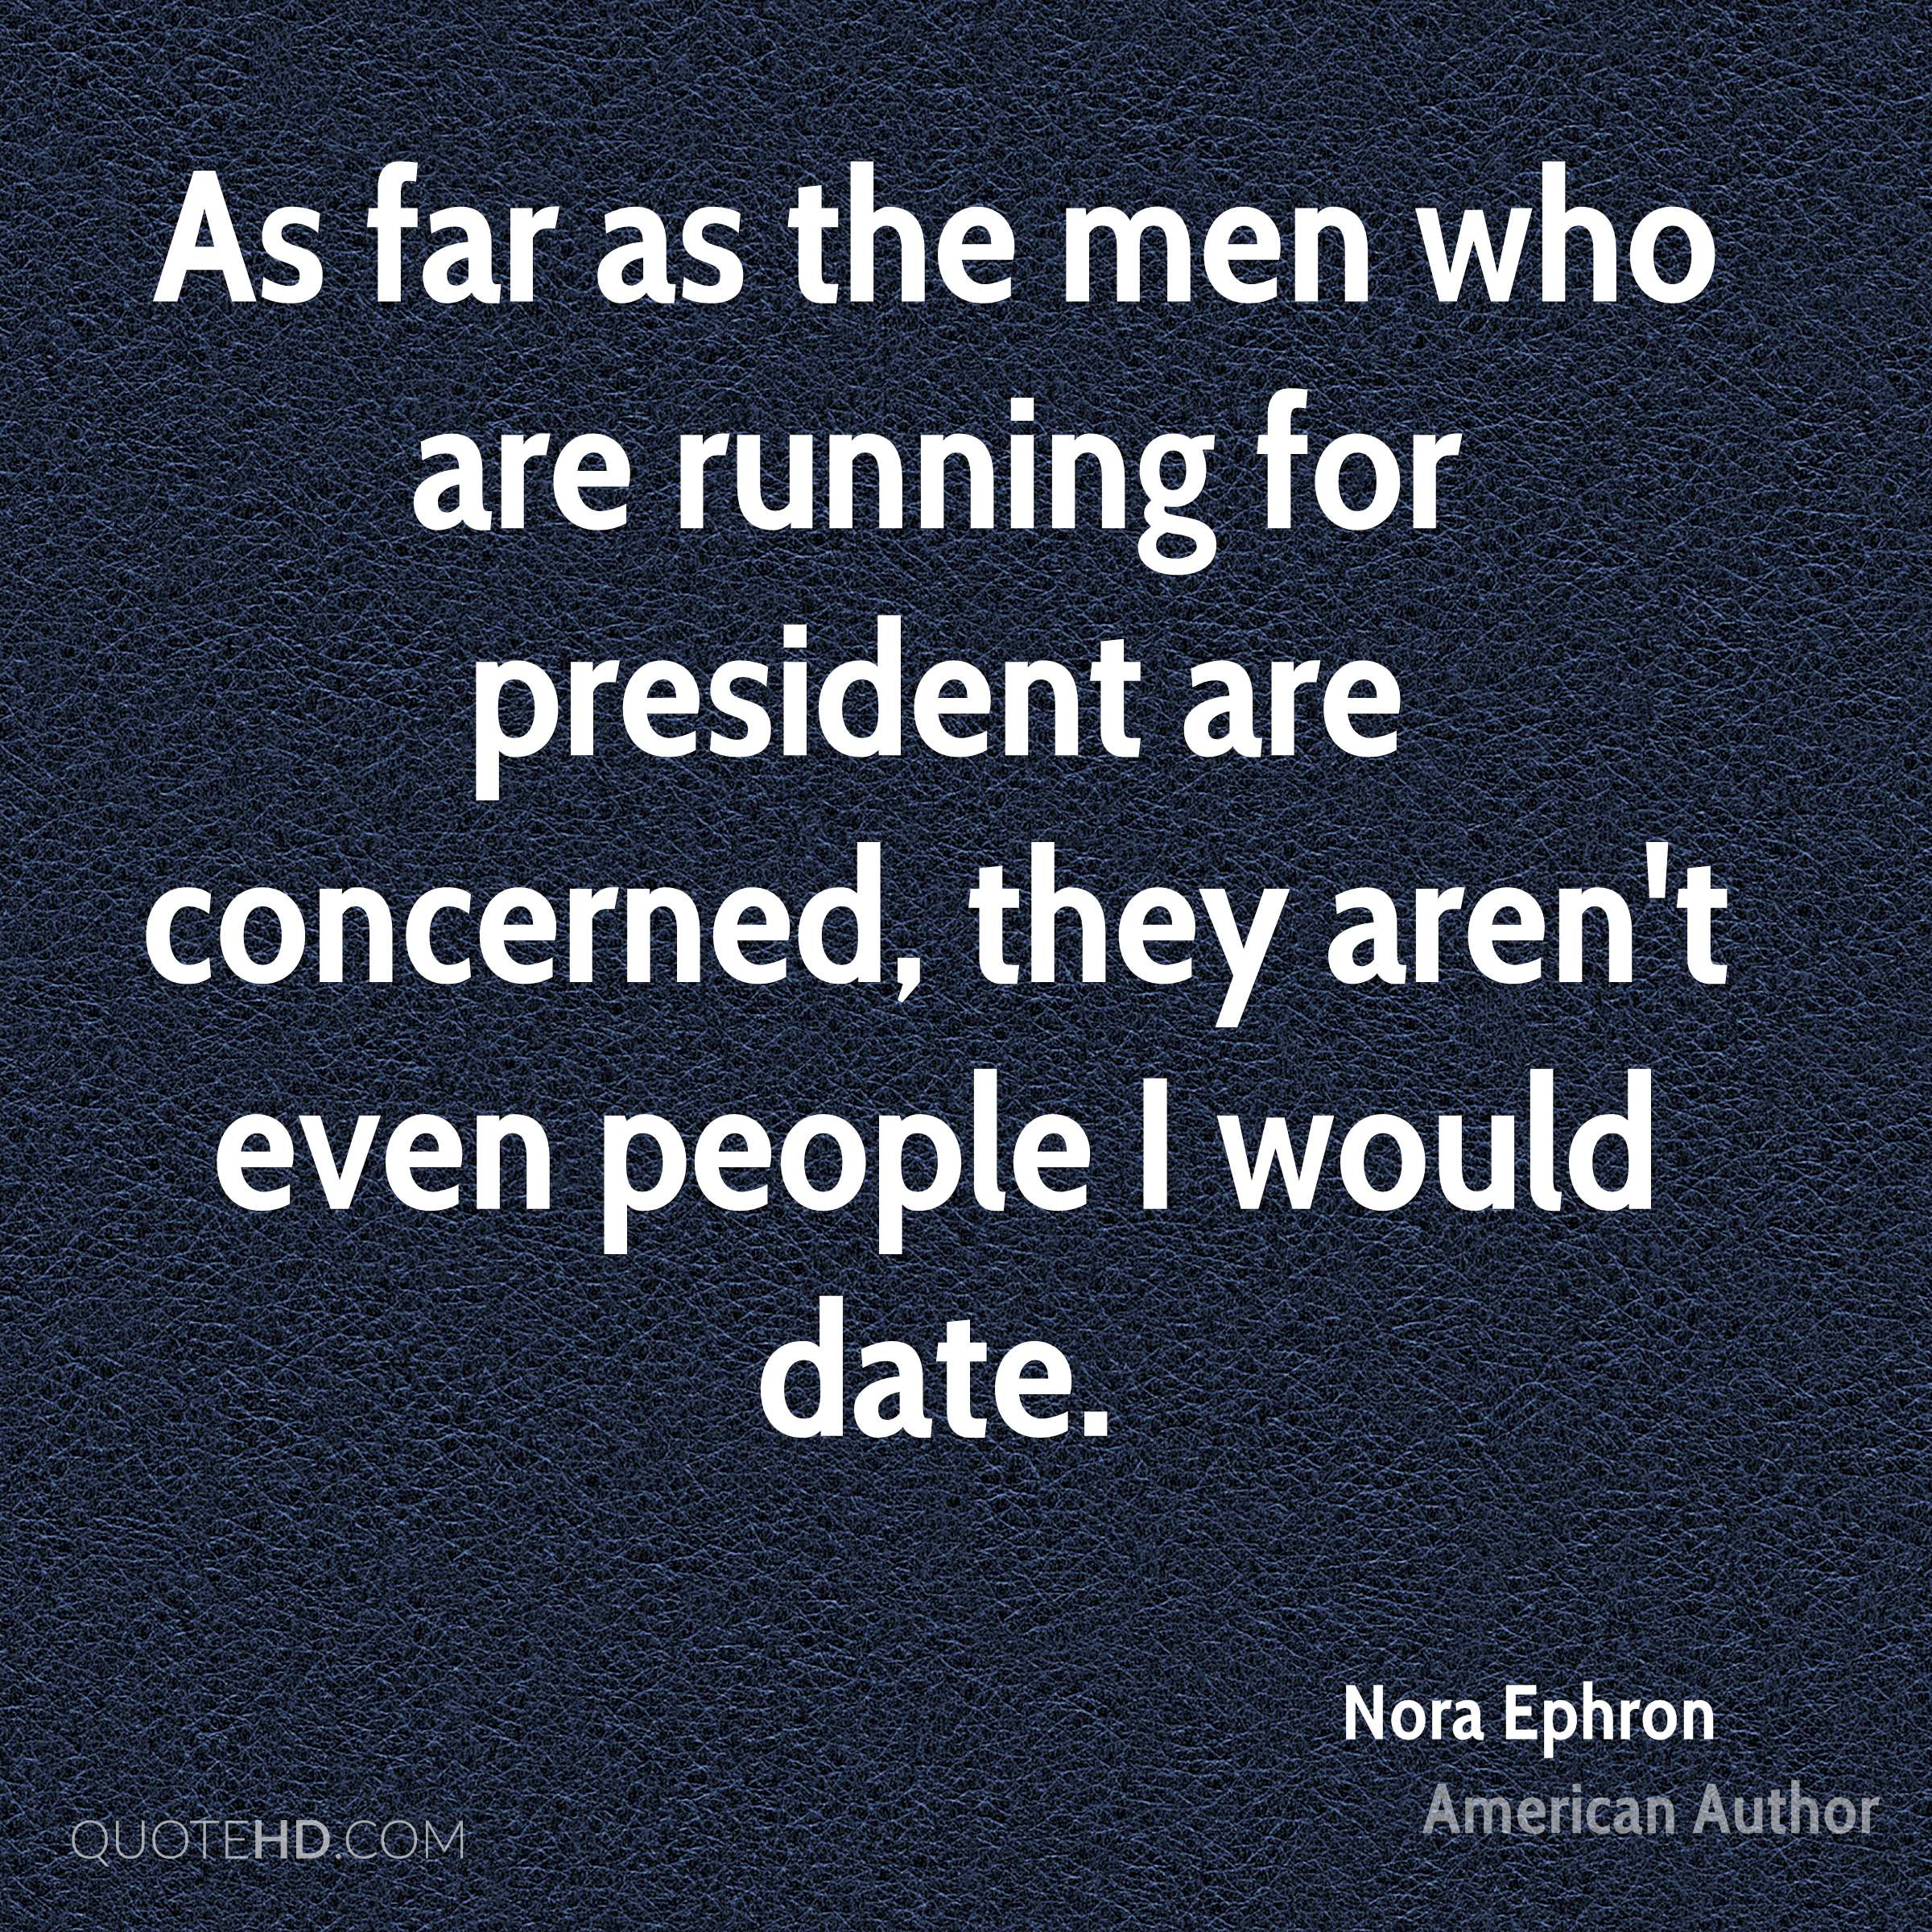 As far as the men who are running for president are concerned, they aren't even people I would date.